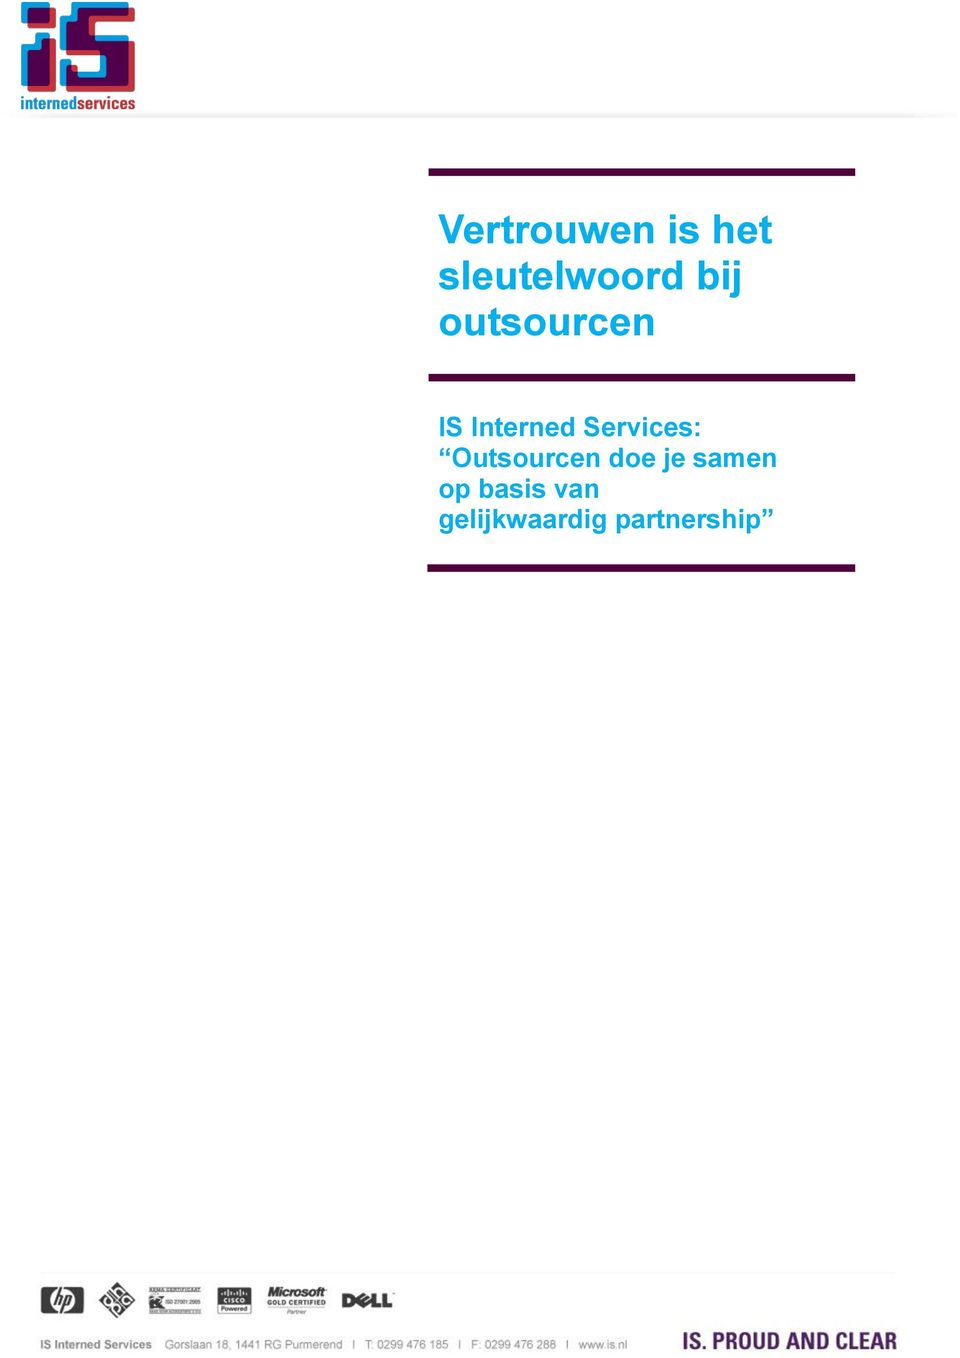 Services: Outsourcen doe je